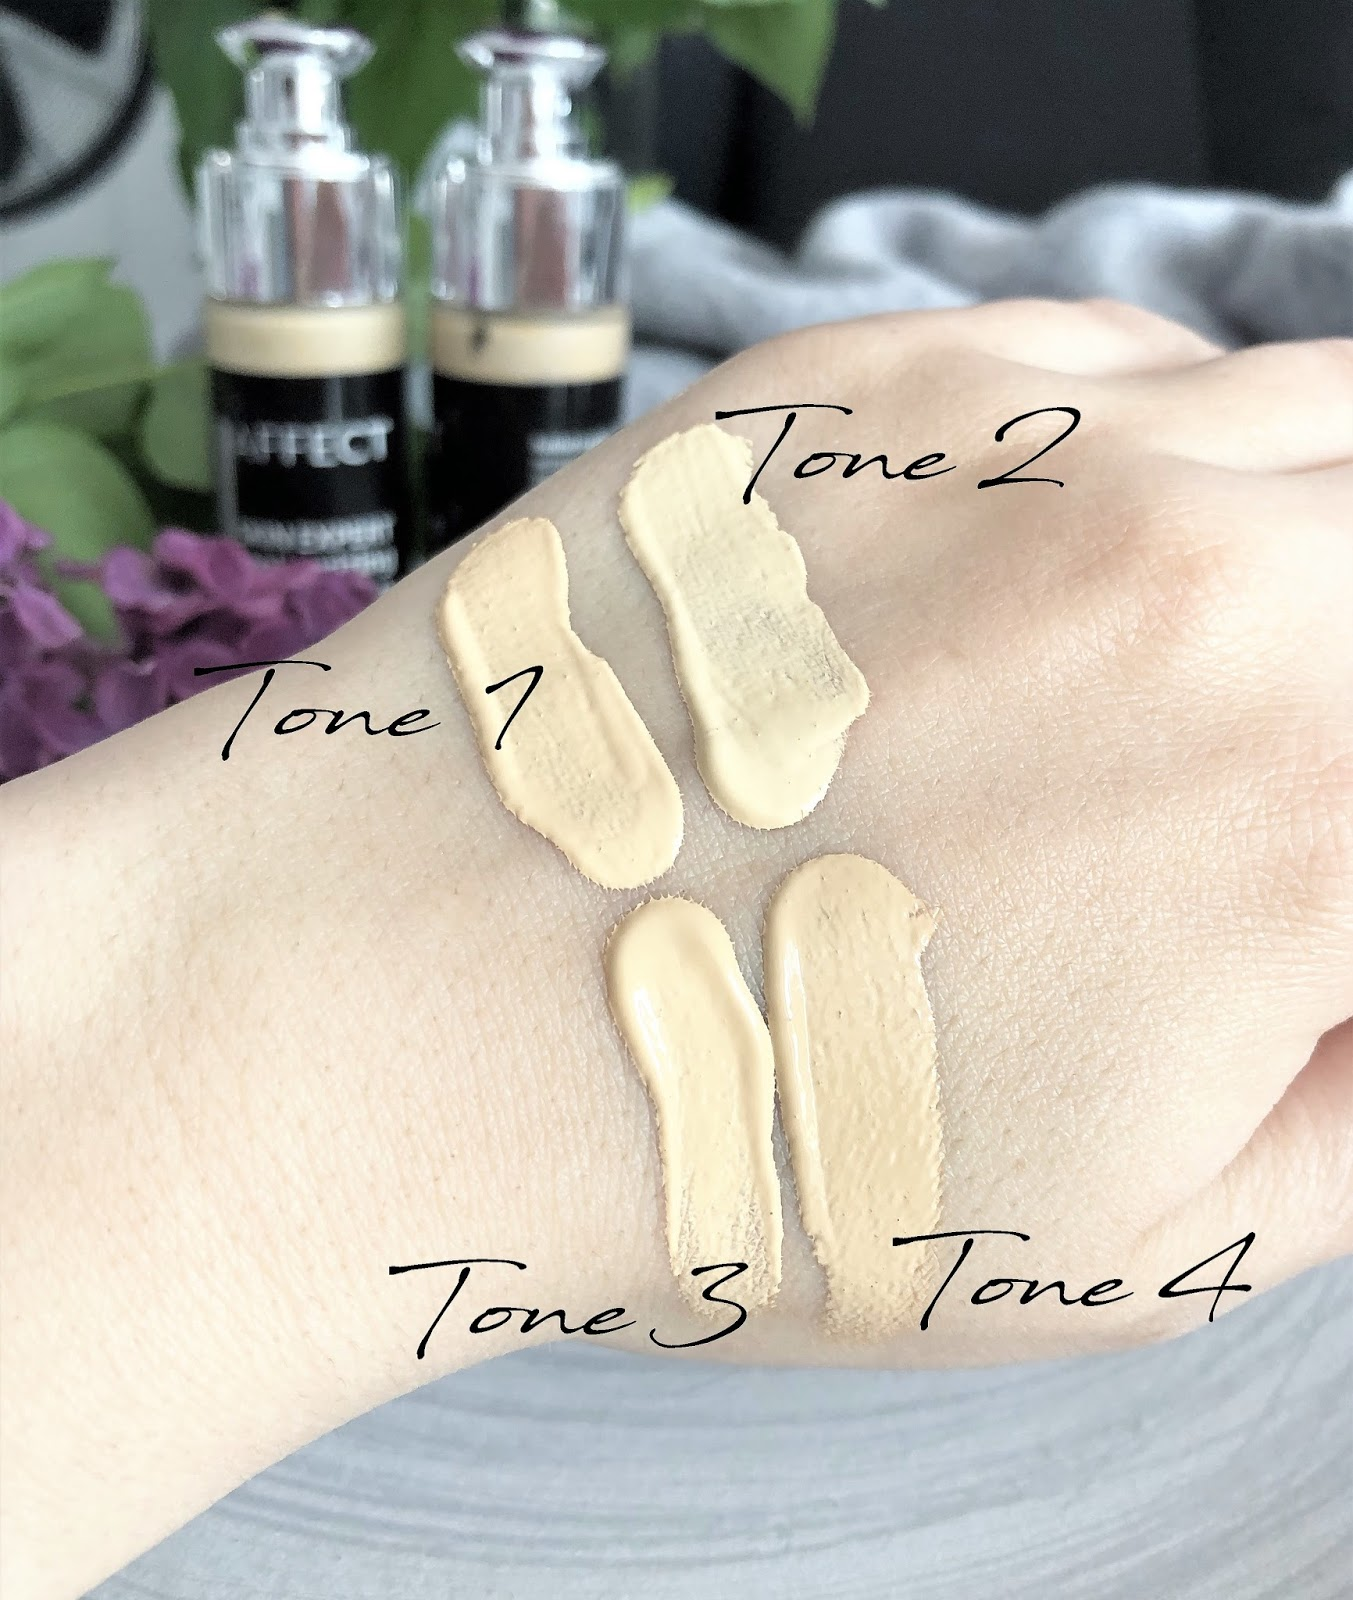 zolty-podklad-Affect-Skin-Expert-moisturizing-foundation-swatches